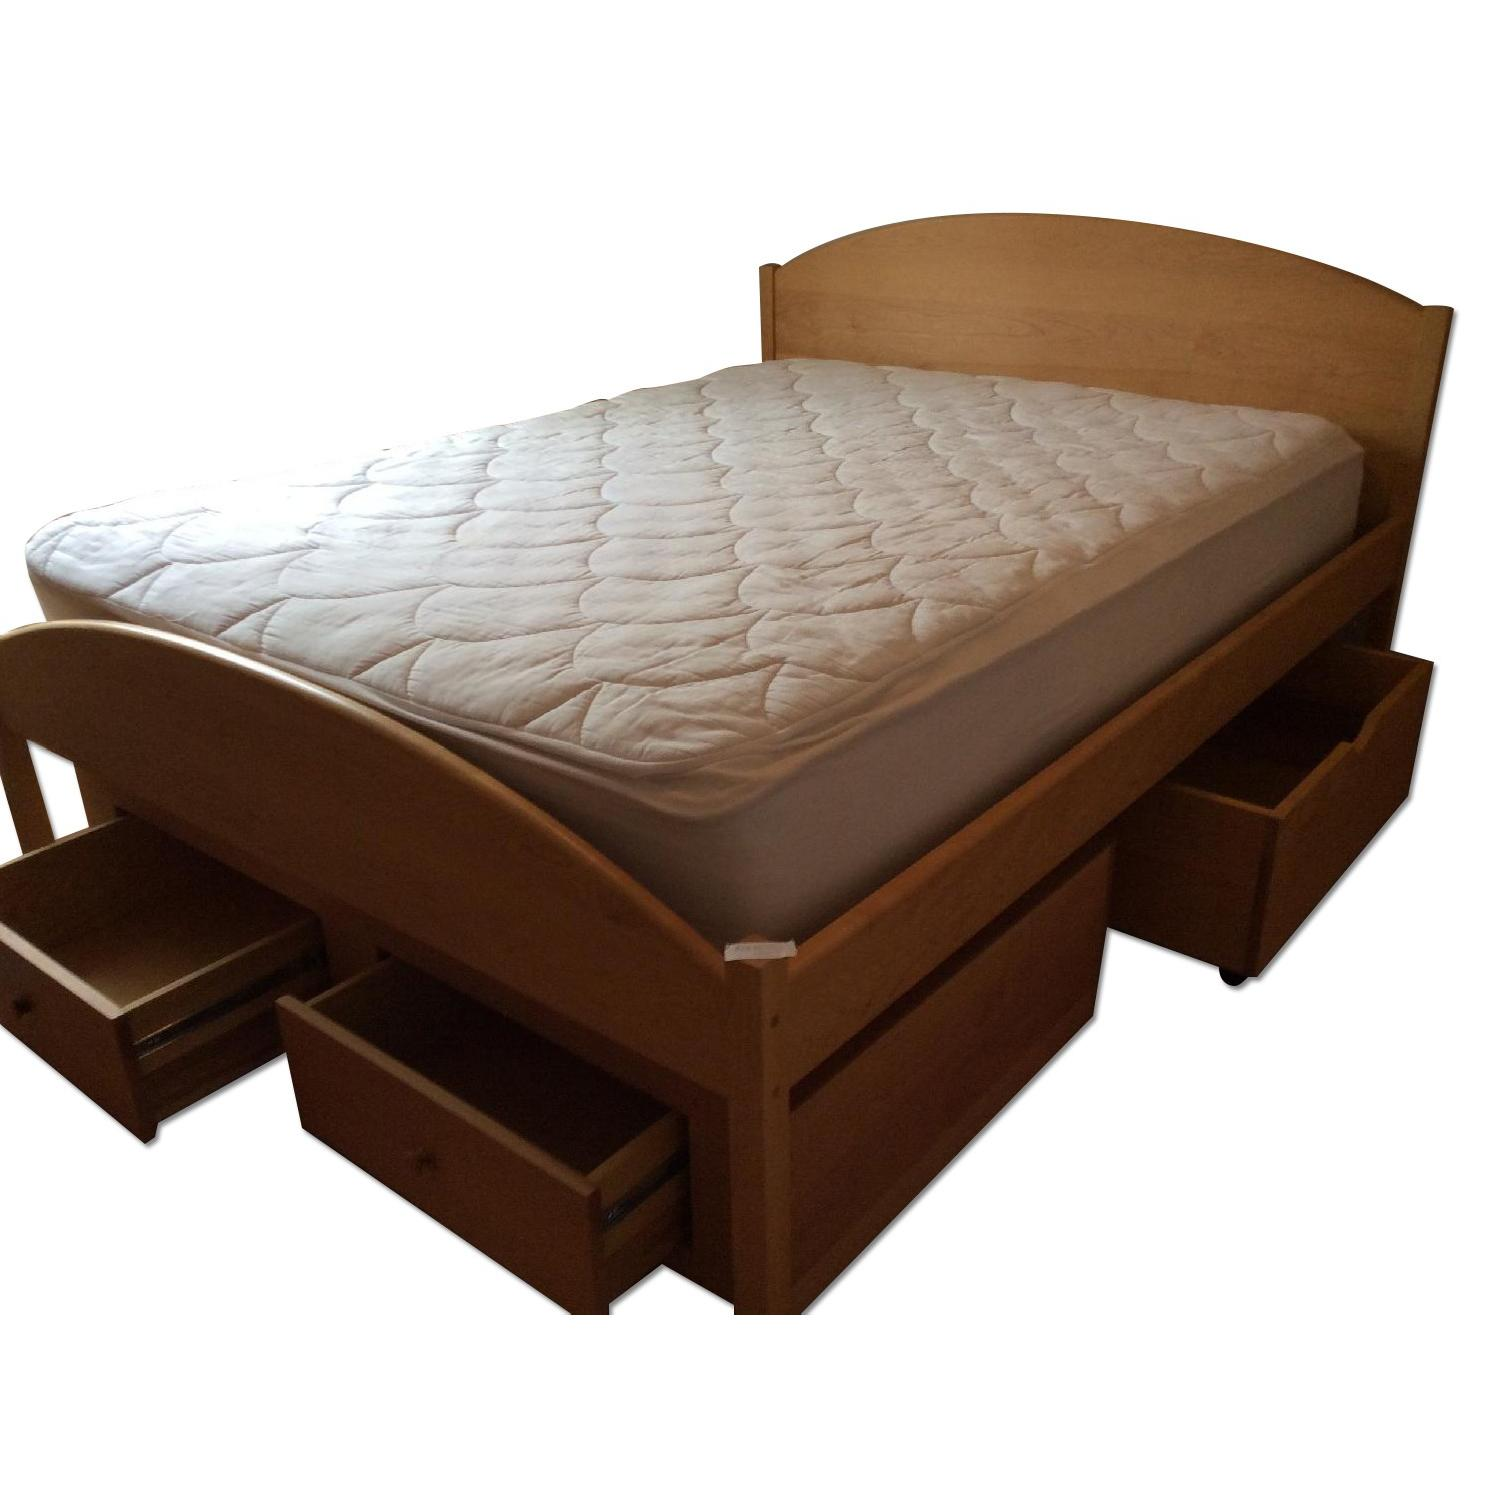 Pompanoosuc Mills Maple Queen Storage Bed ...  sc 1 st  AptDeco & Pompanoosuc Mills Maple Queen Storage Bed - AptDeco